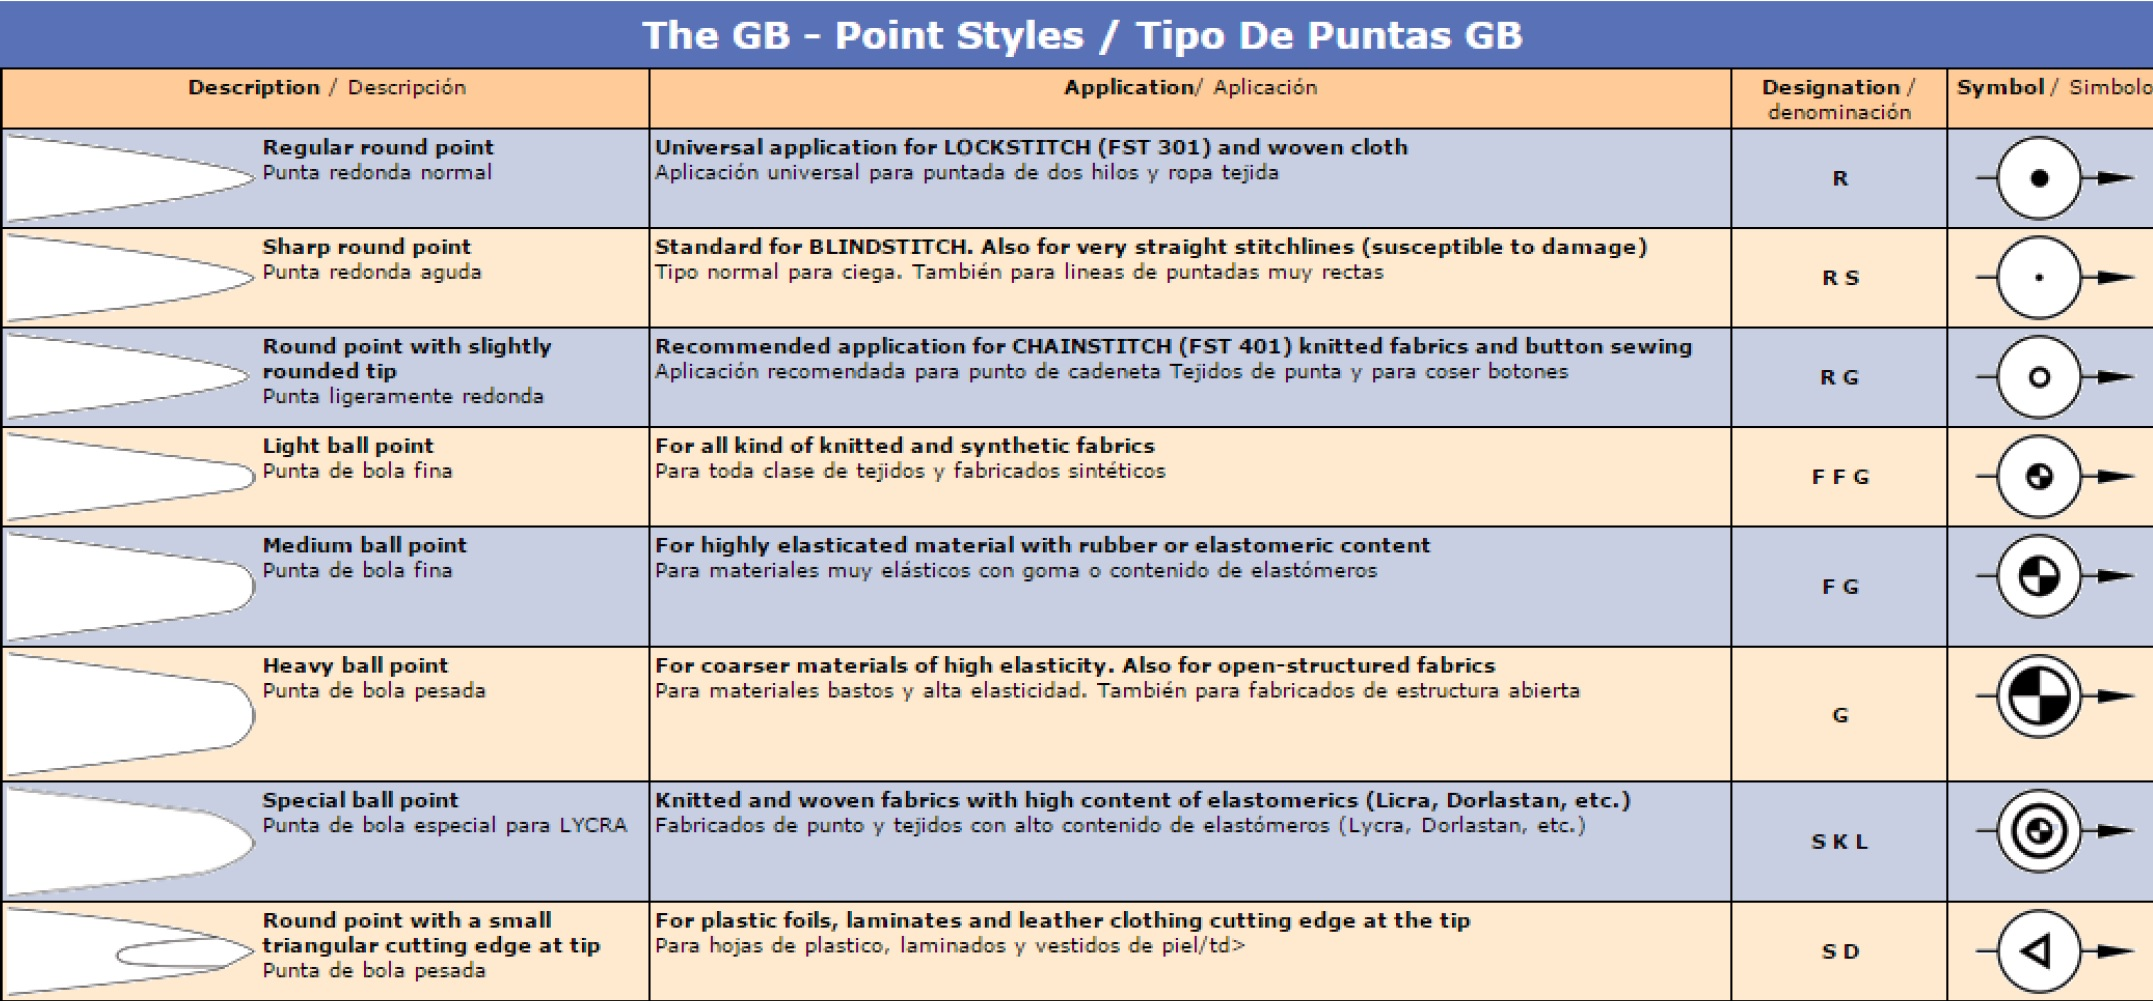 The GB - Point Styles